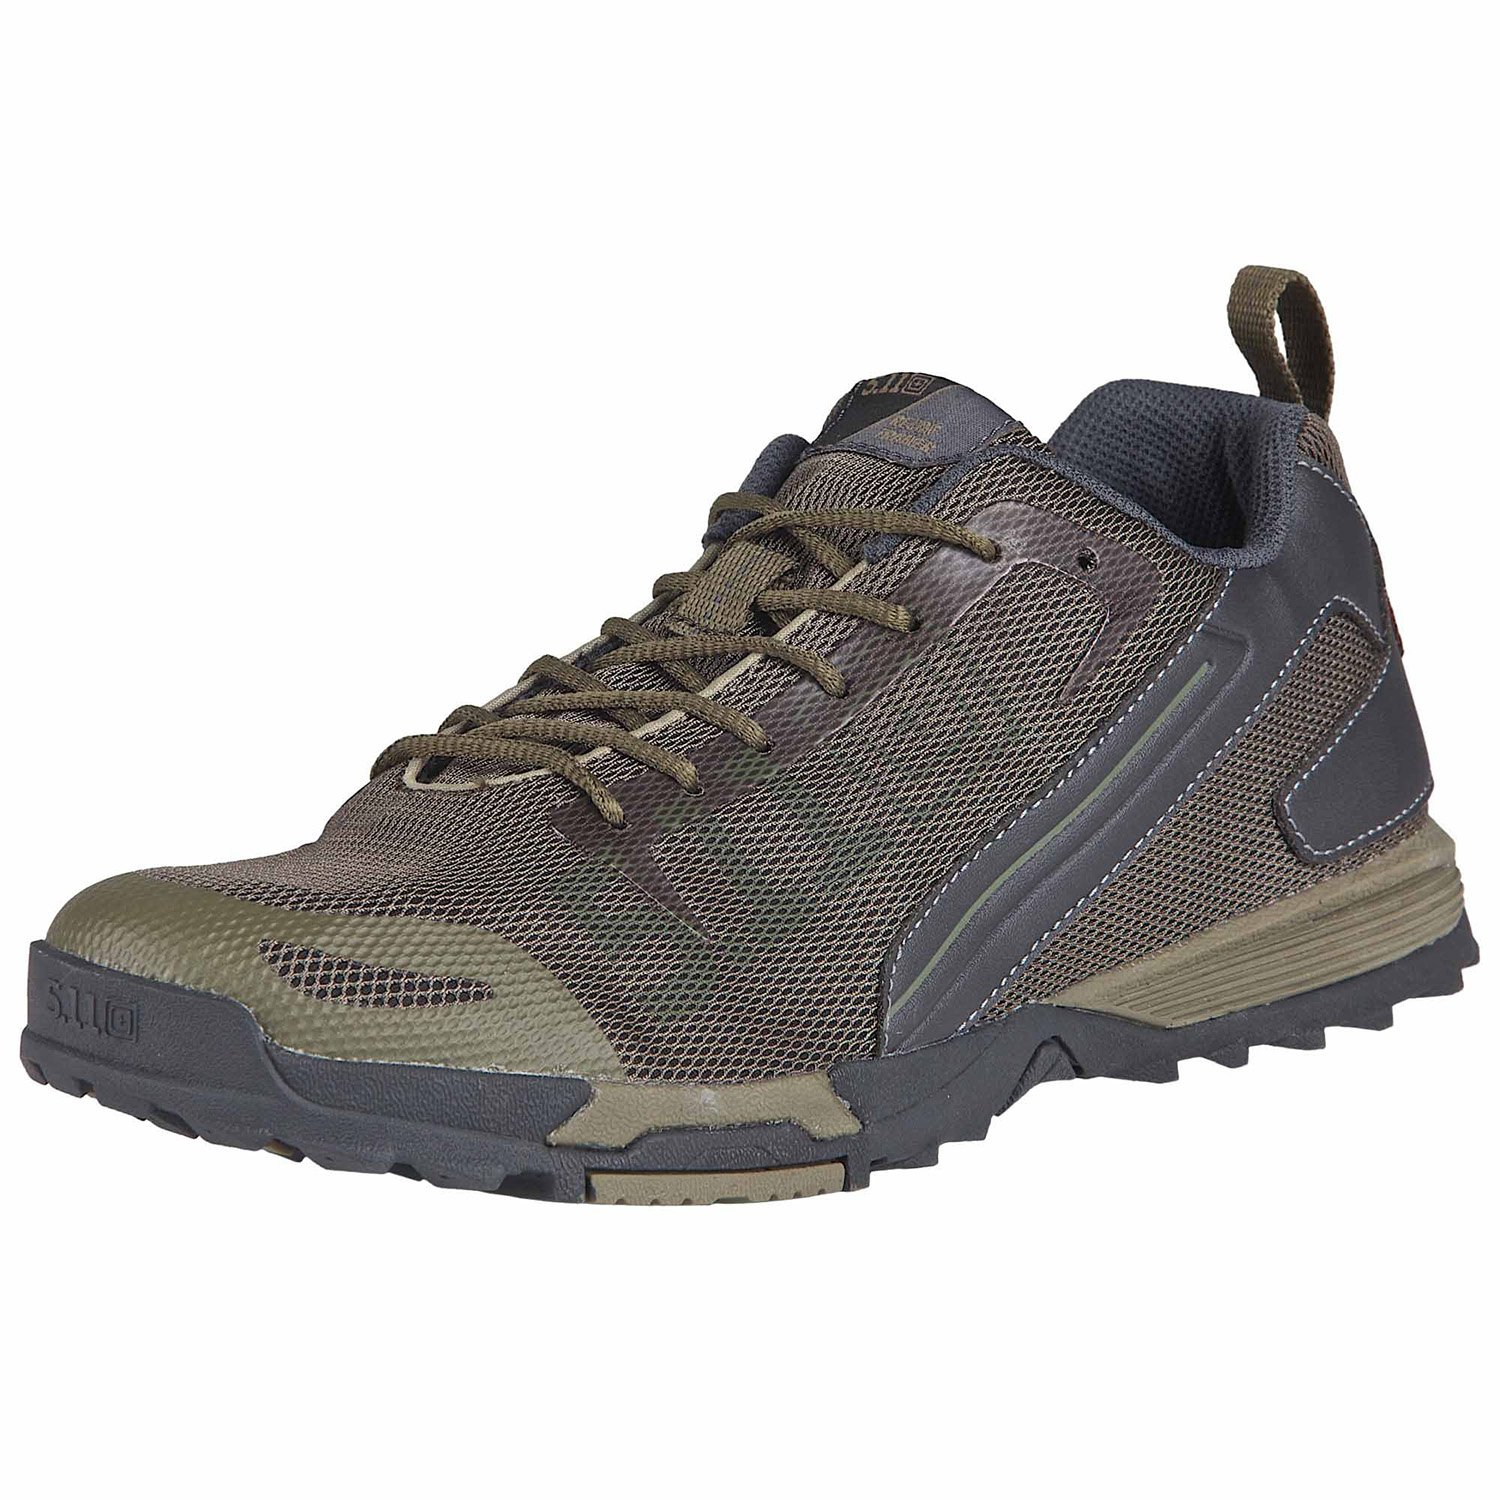 5.11 Tactical Men's Recon TS Trail Running Shoe,Sage,7.5 D(M) US